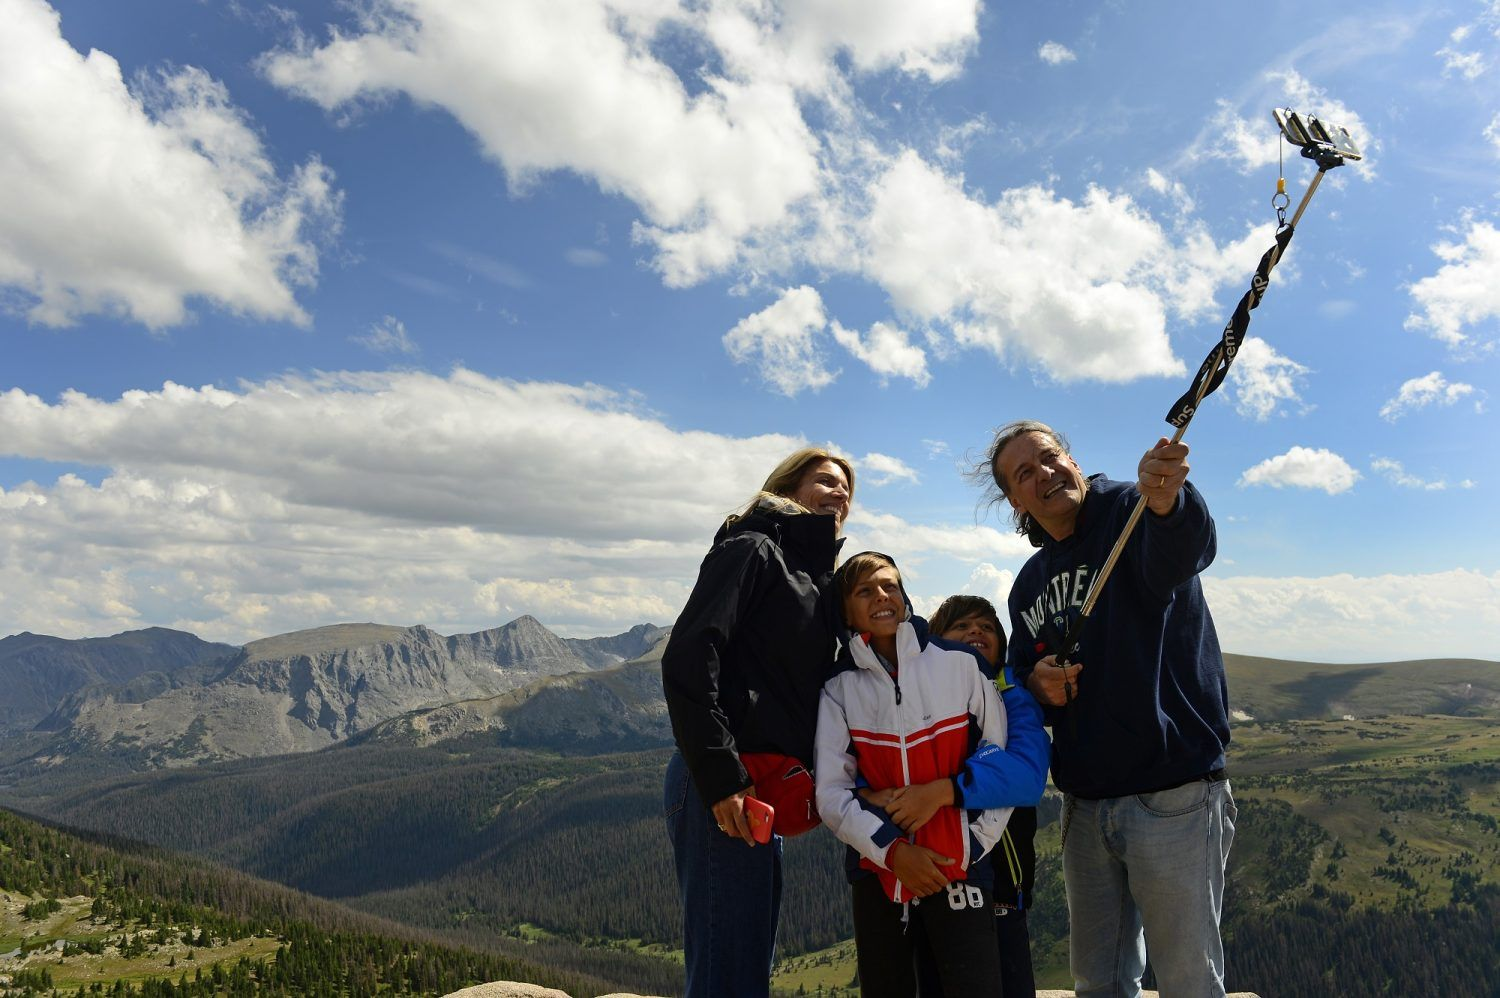 24 stunning images of Colorados national parks | National